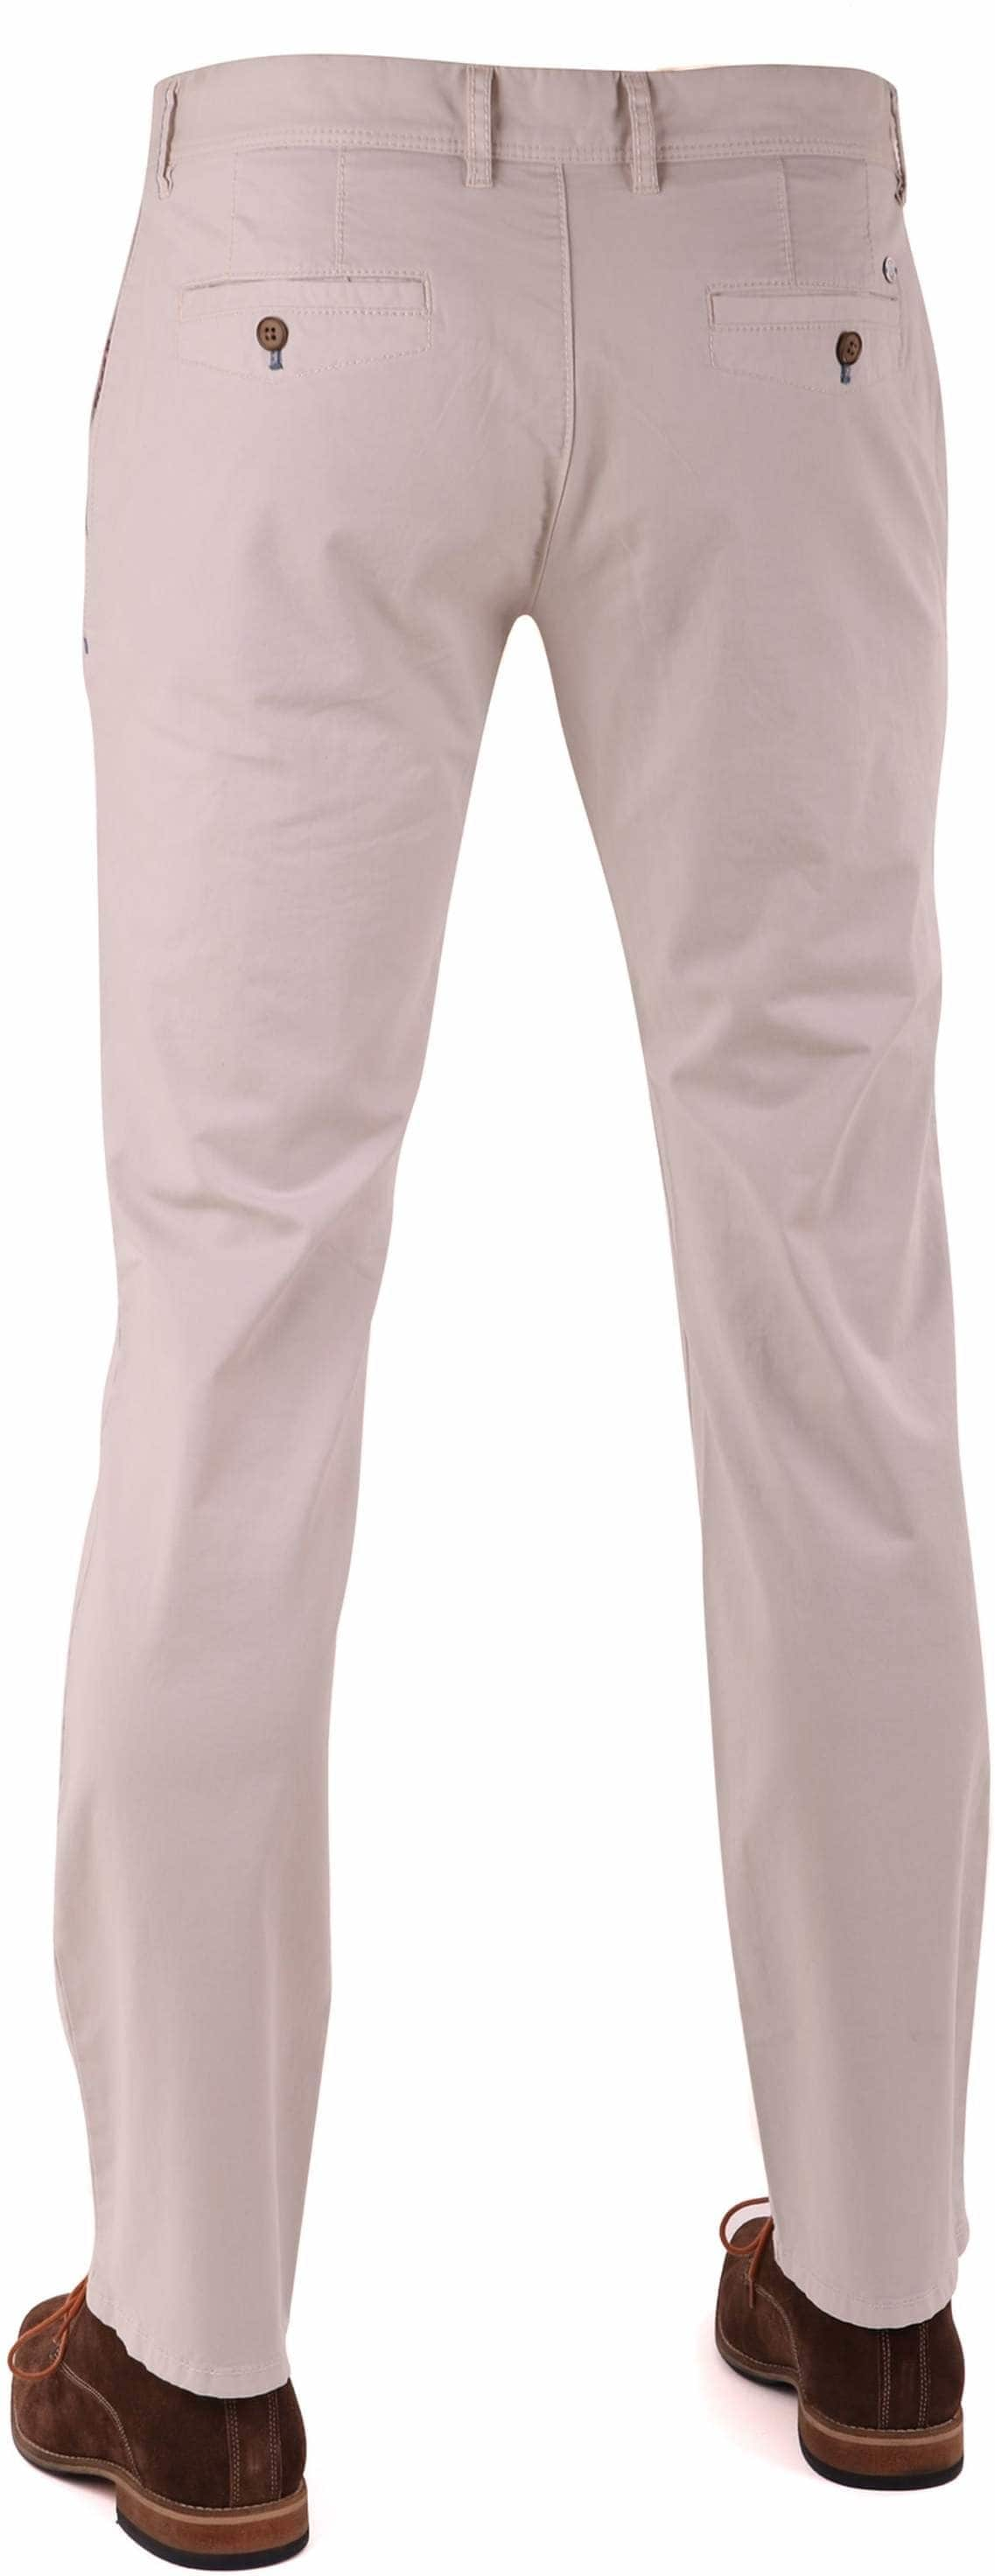 Suitable Chino Broek Off-white foto 1